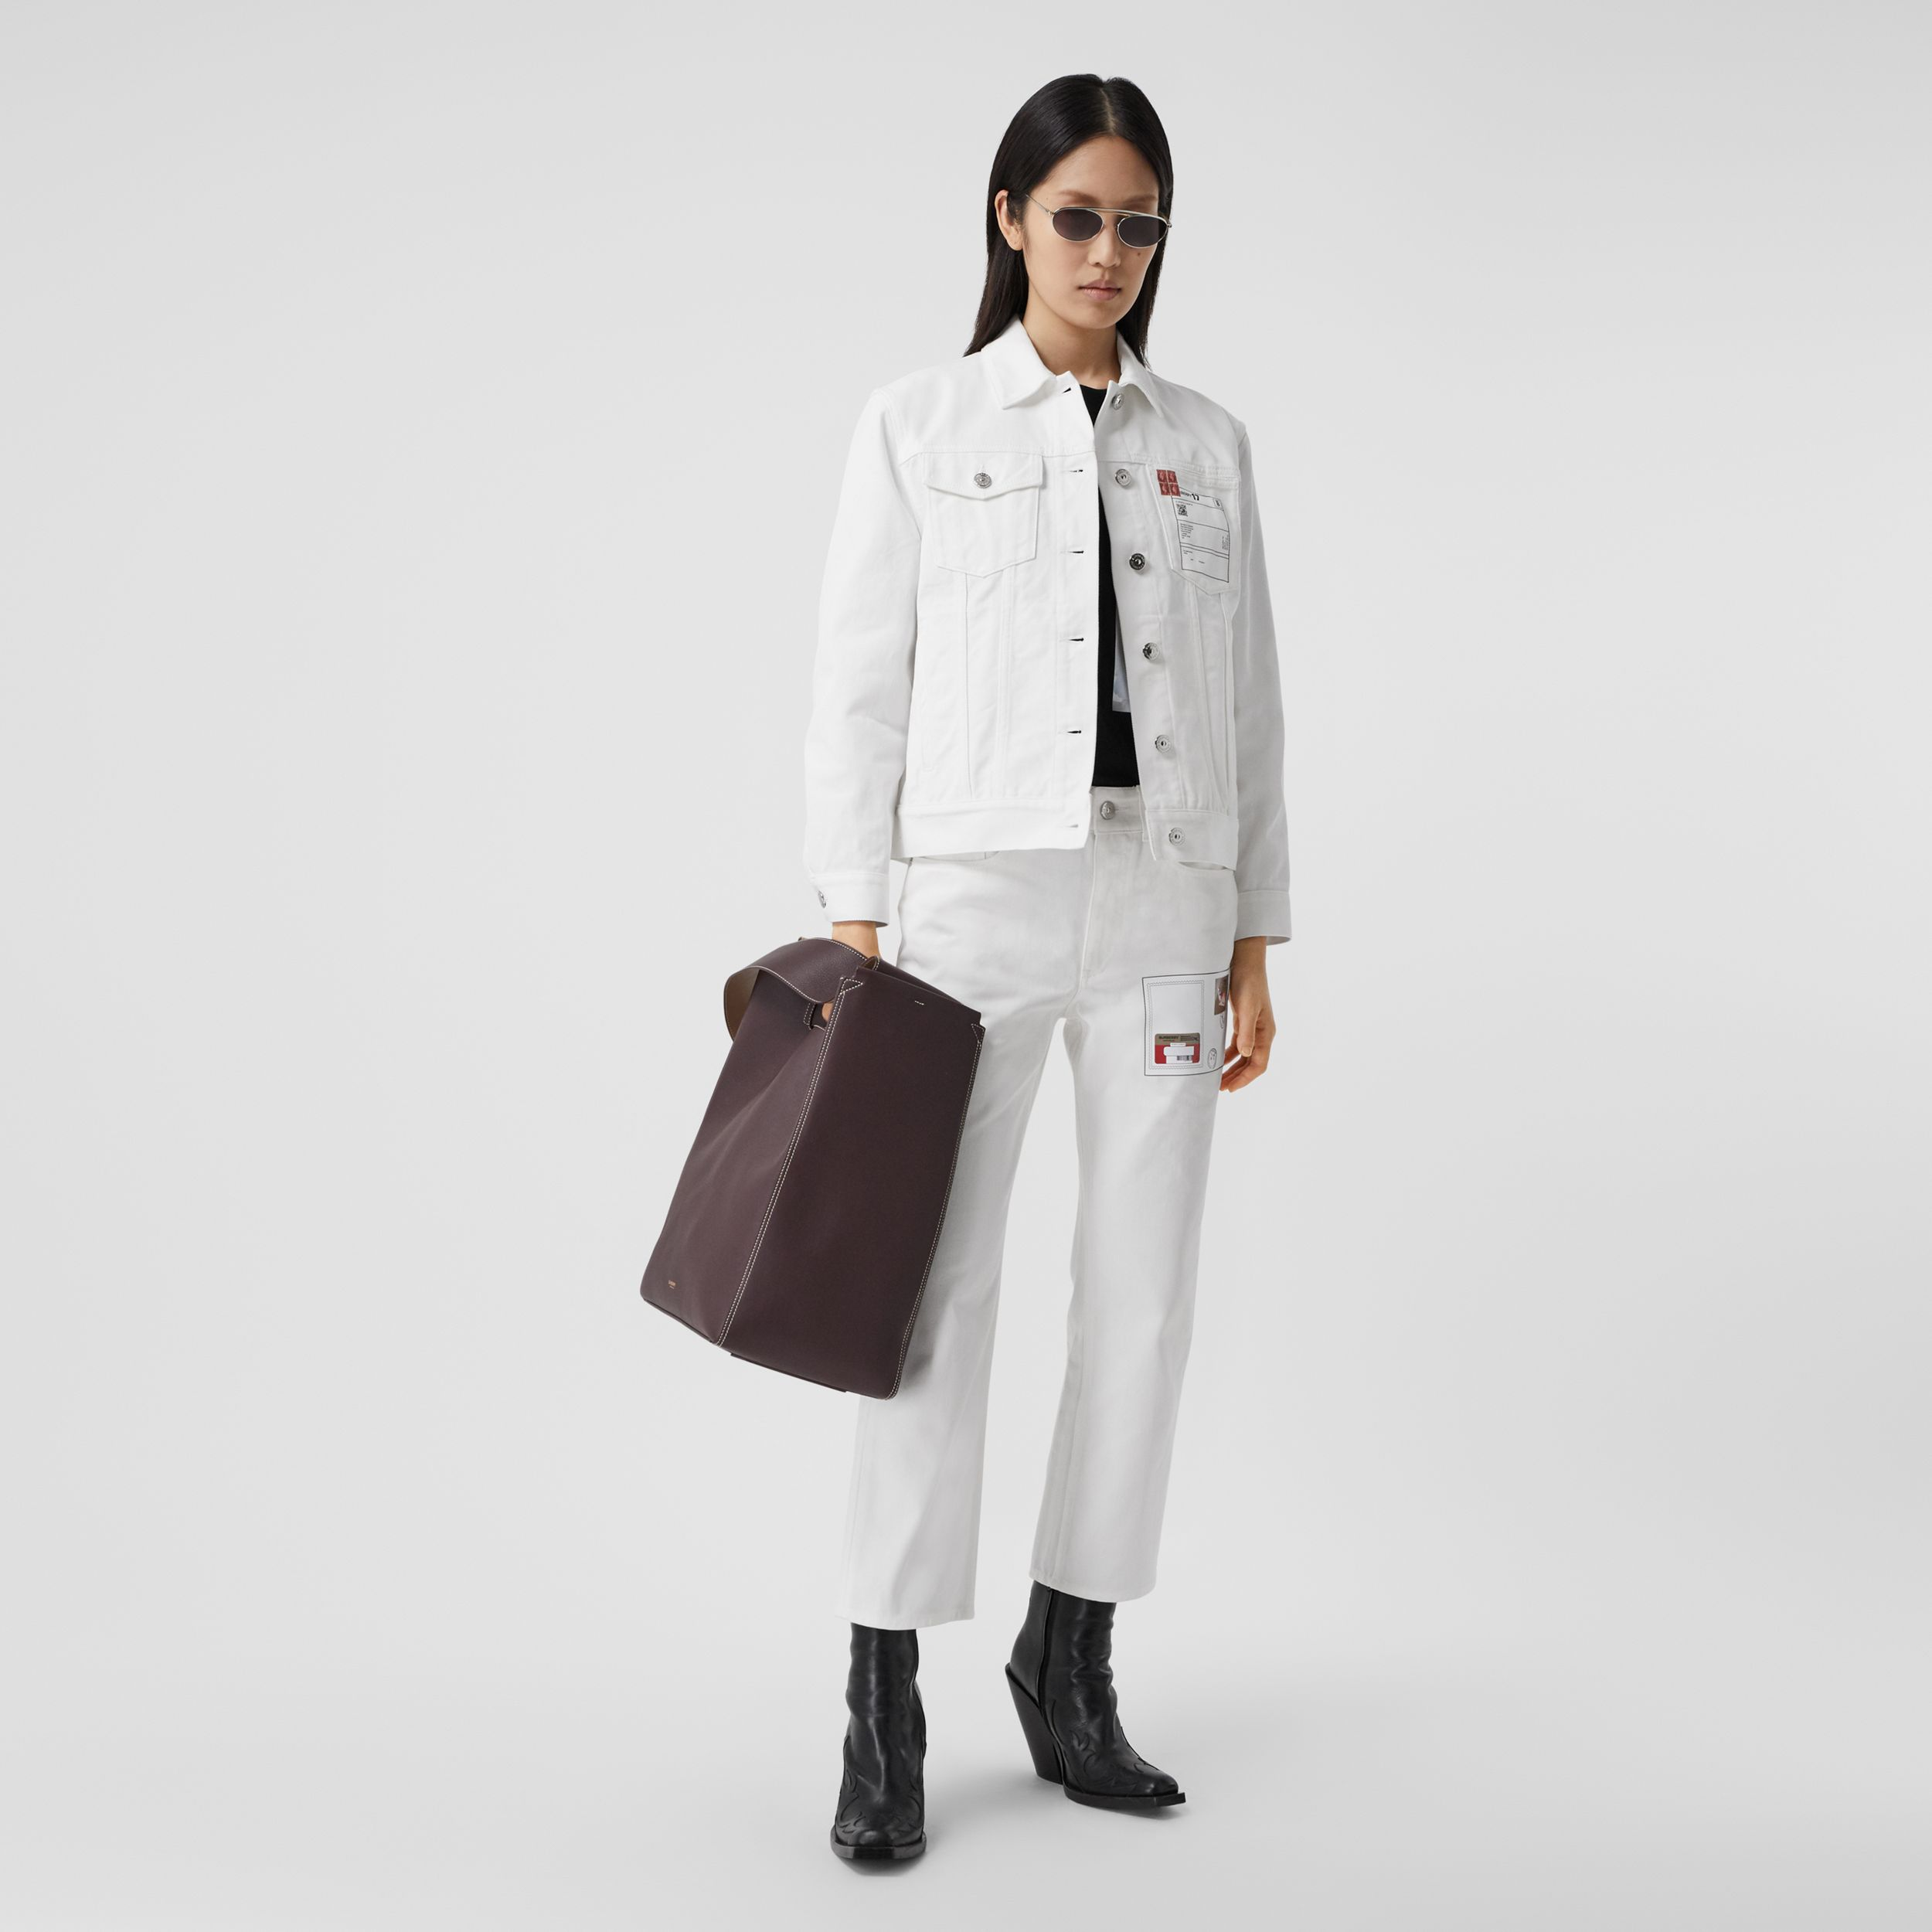 Montage Print Denim Jacket in White - Women | Burberry Canada - 1